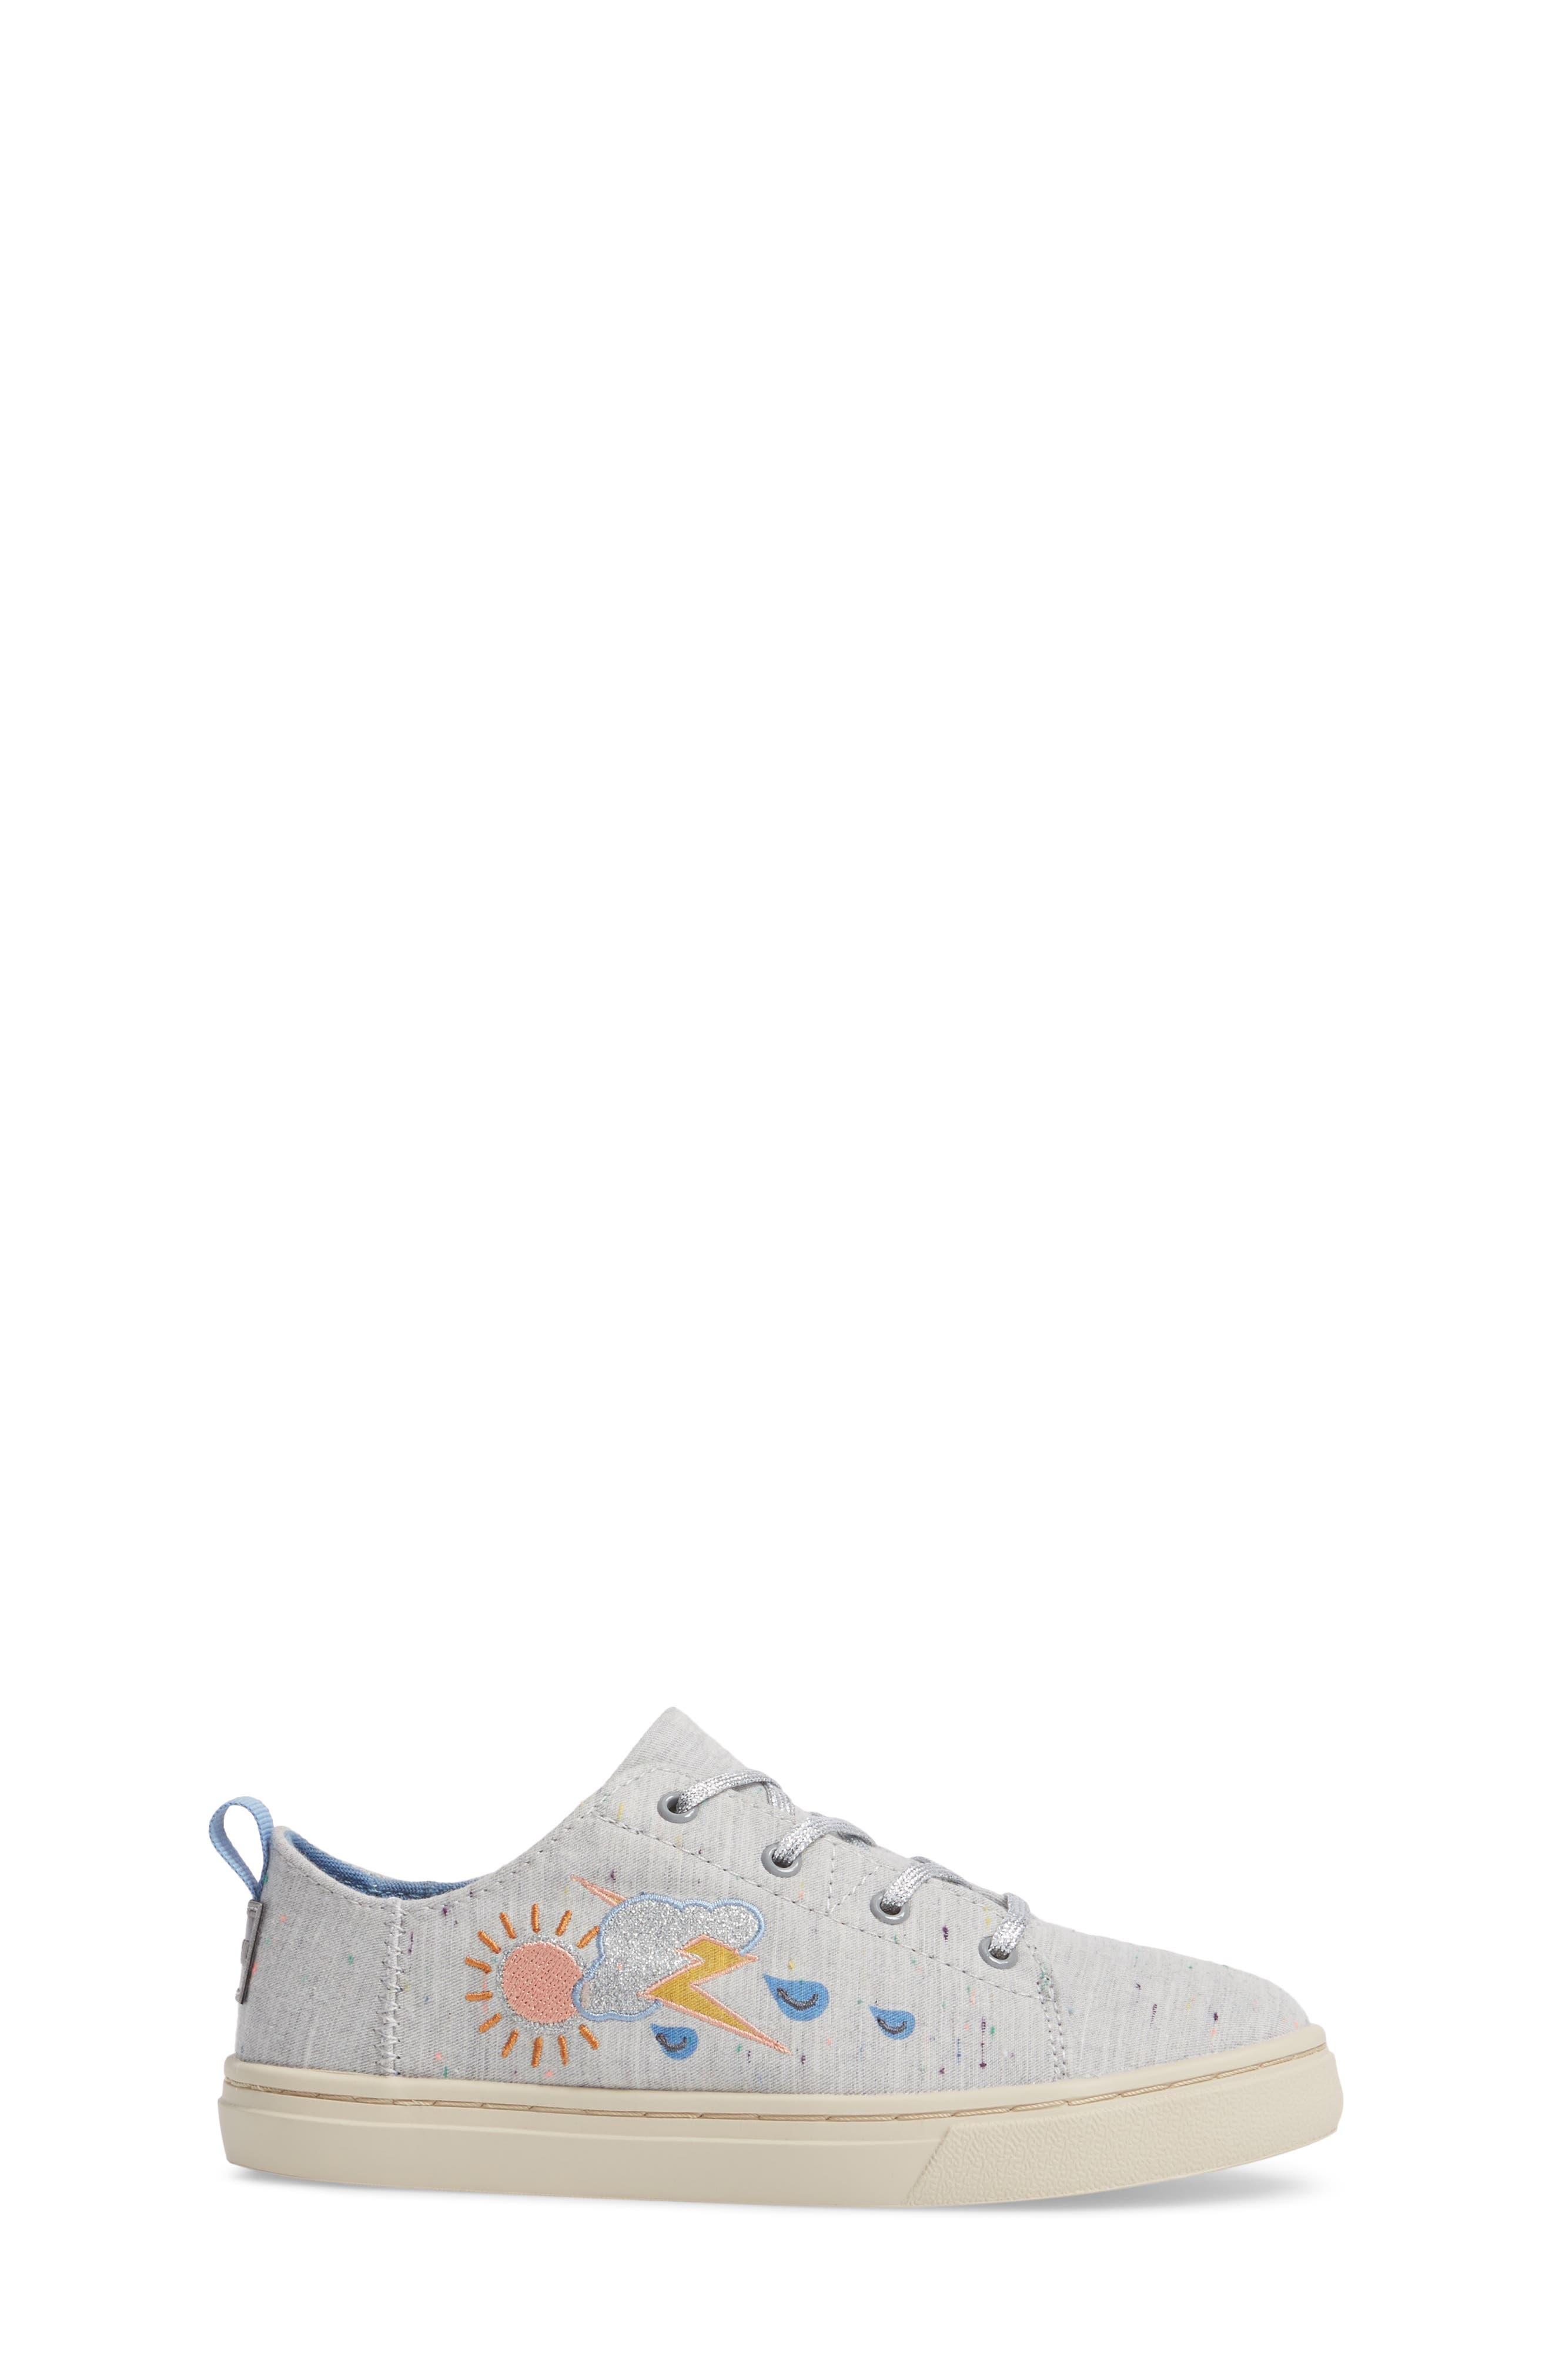 Lenny Embroidered Sneaker,                             Alternate thumbnail 3, color,                             020